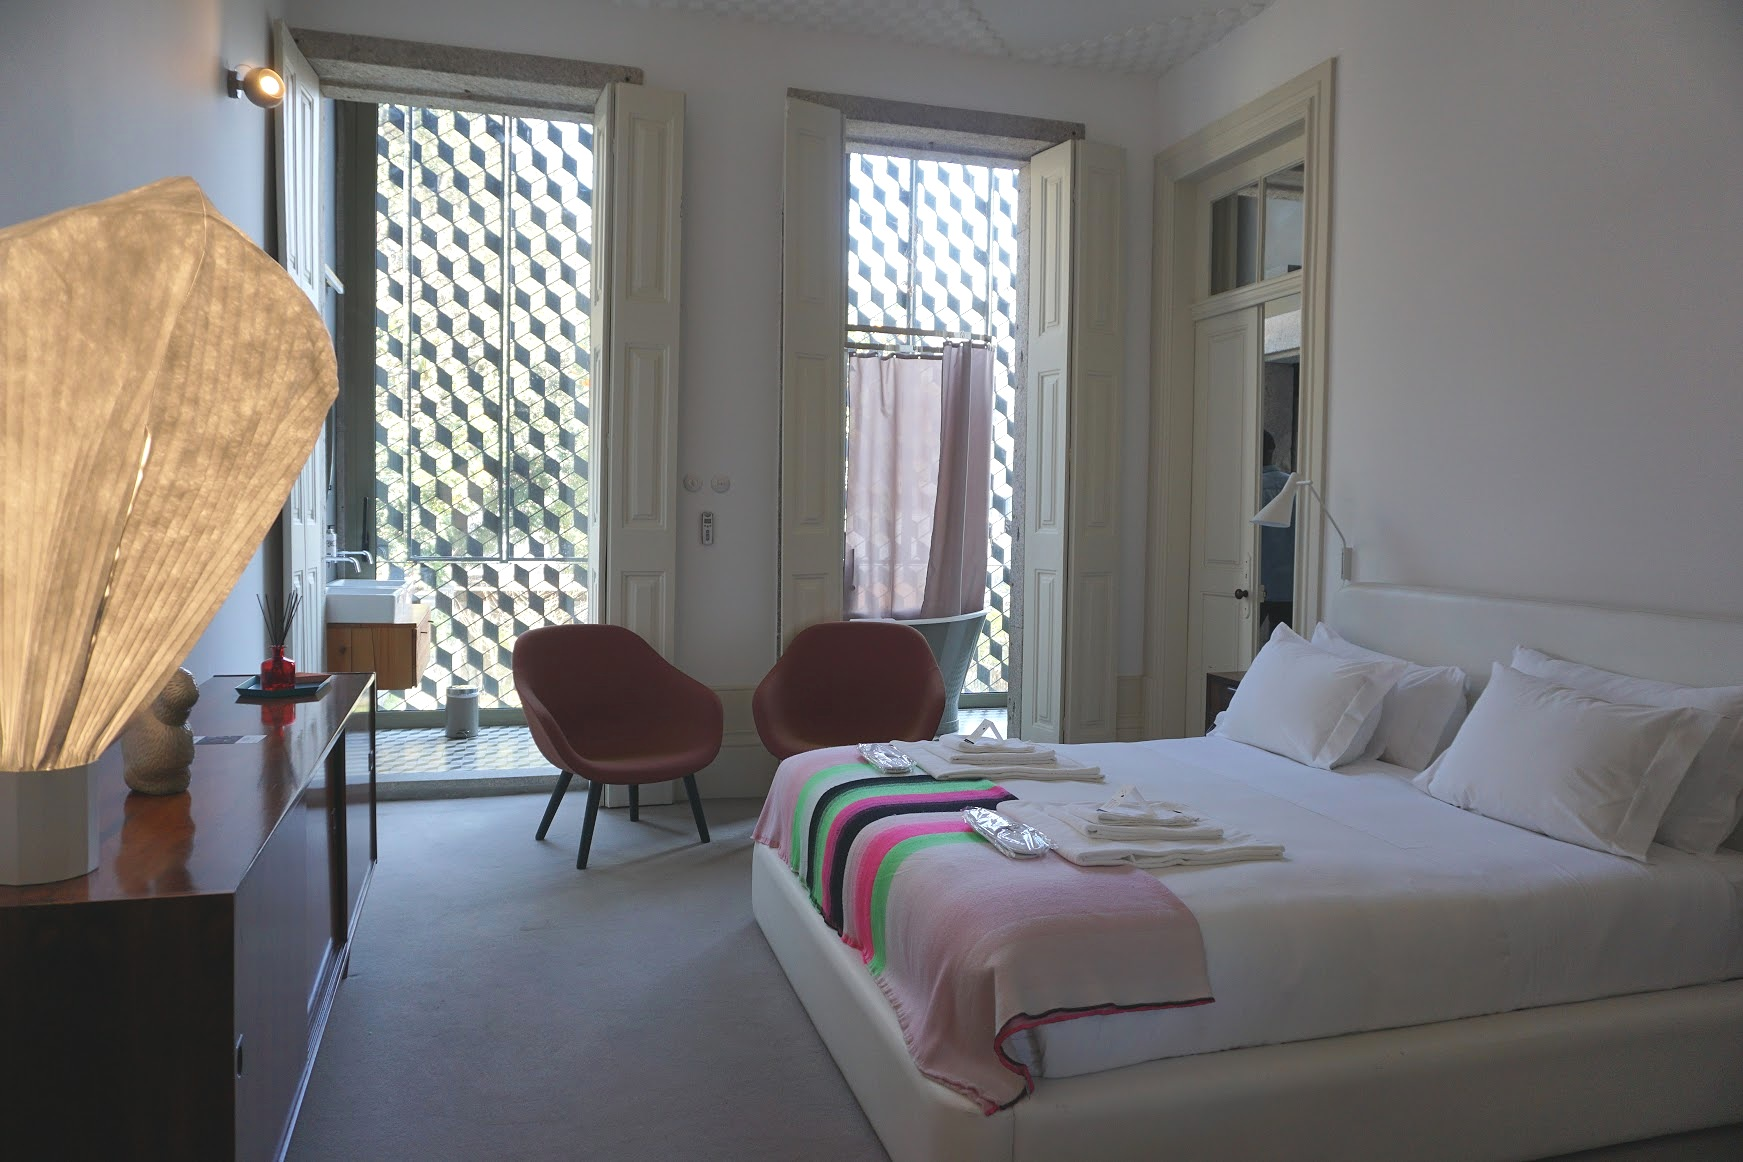 Malmerendas Boutique - Boutique Lodging | Porto, Portugal